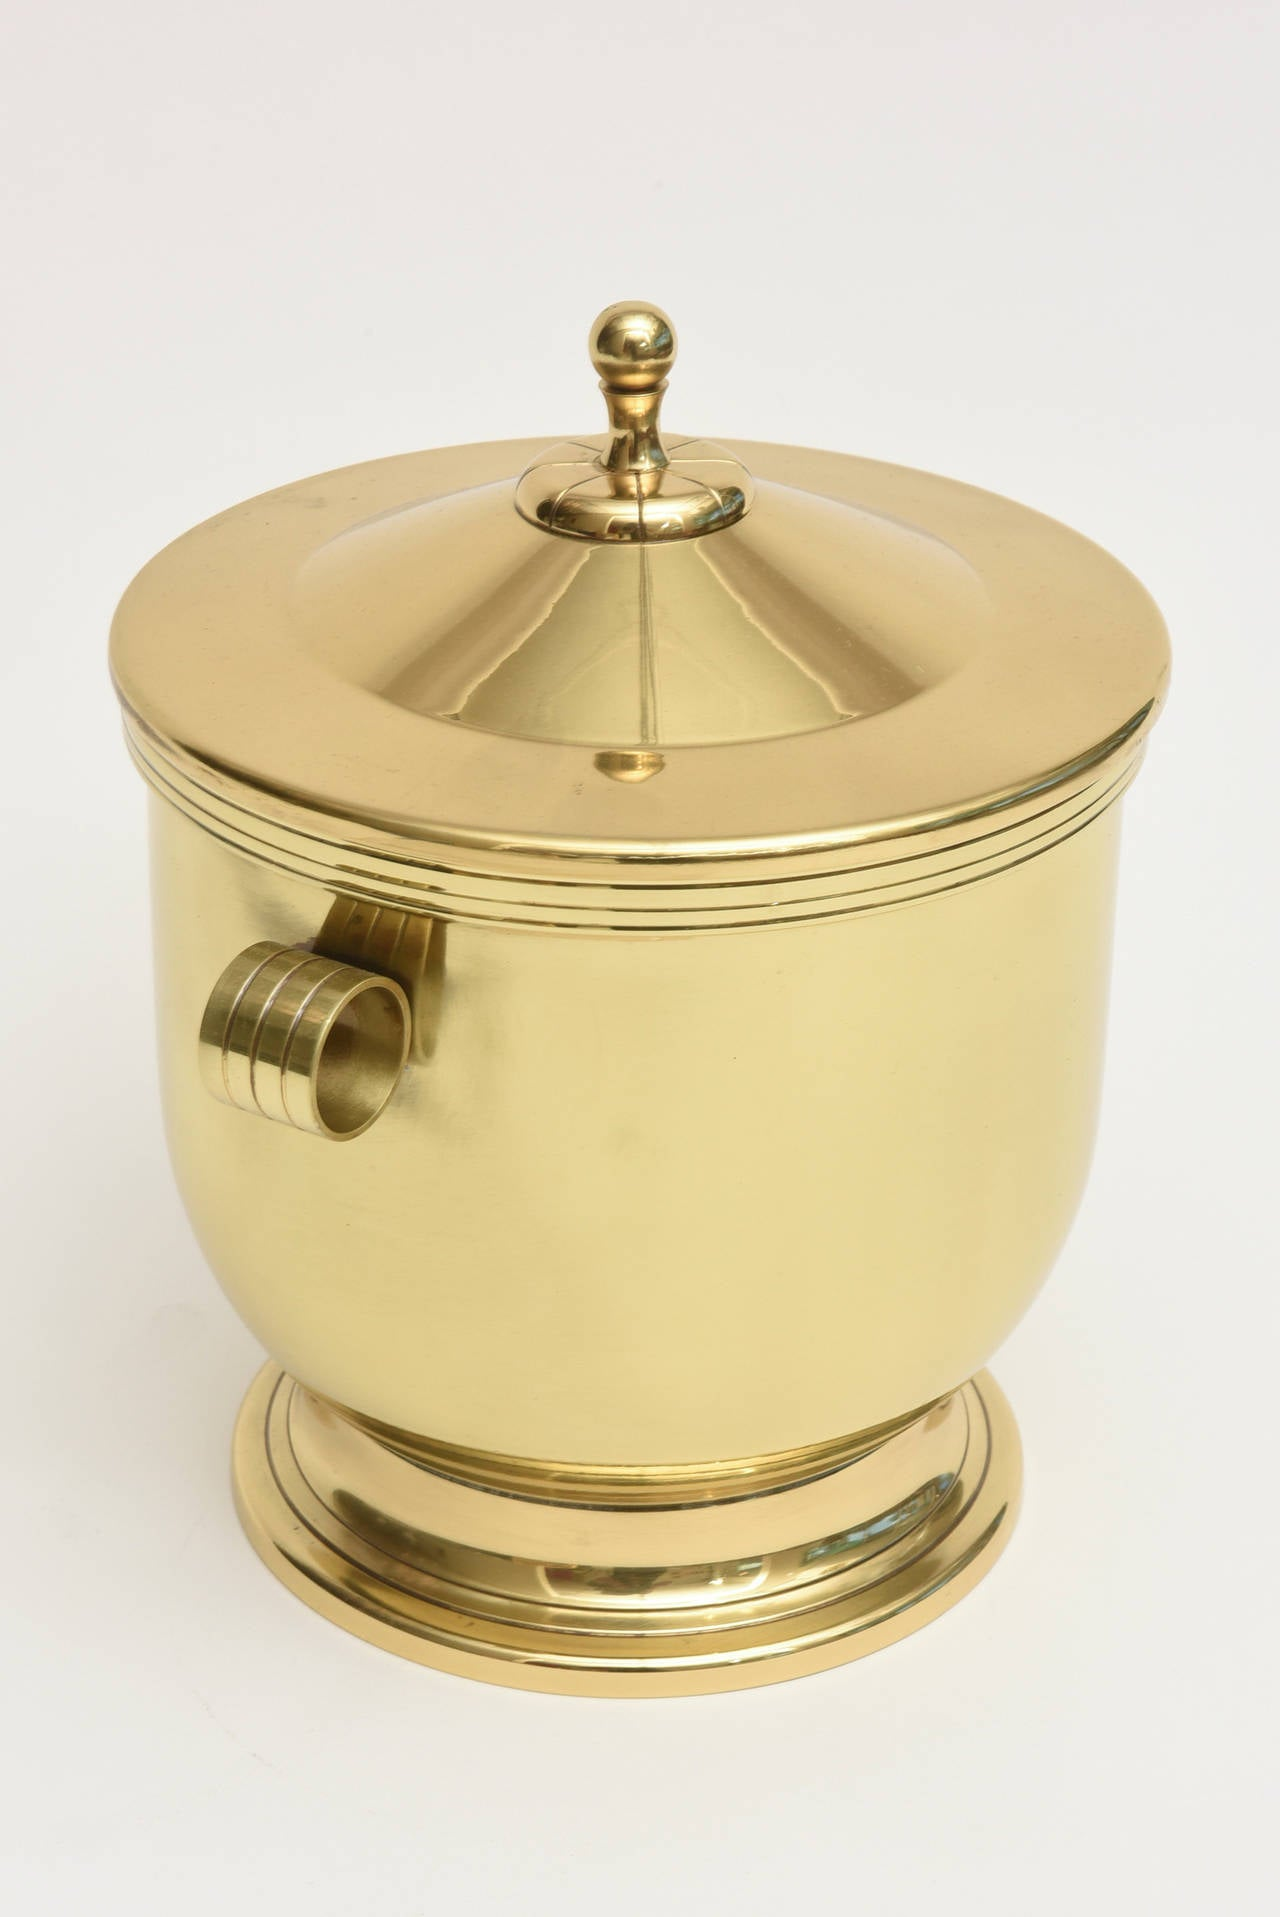 American Classic Tommi Parzinger Polished Brass Ice Covered Ice Bucket For Sale